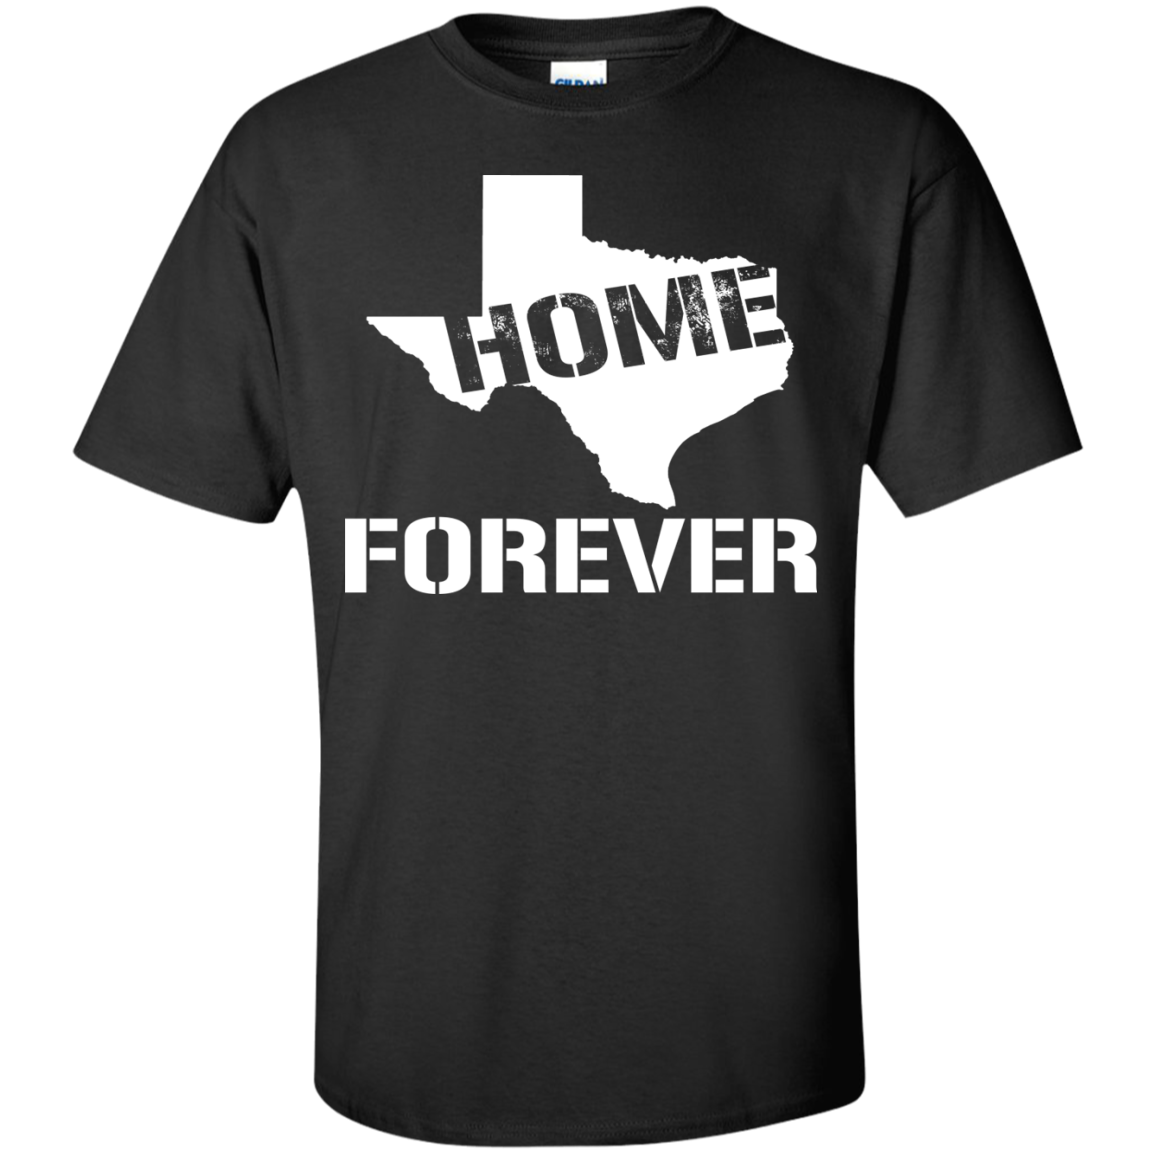 Home Forever Texas Tees For Men & Women